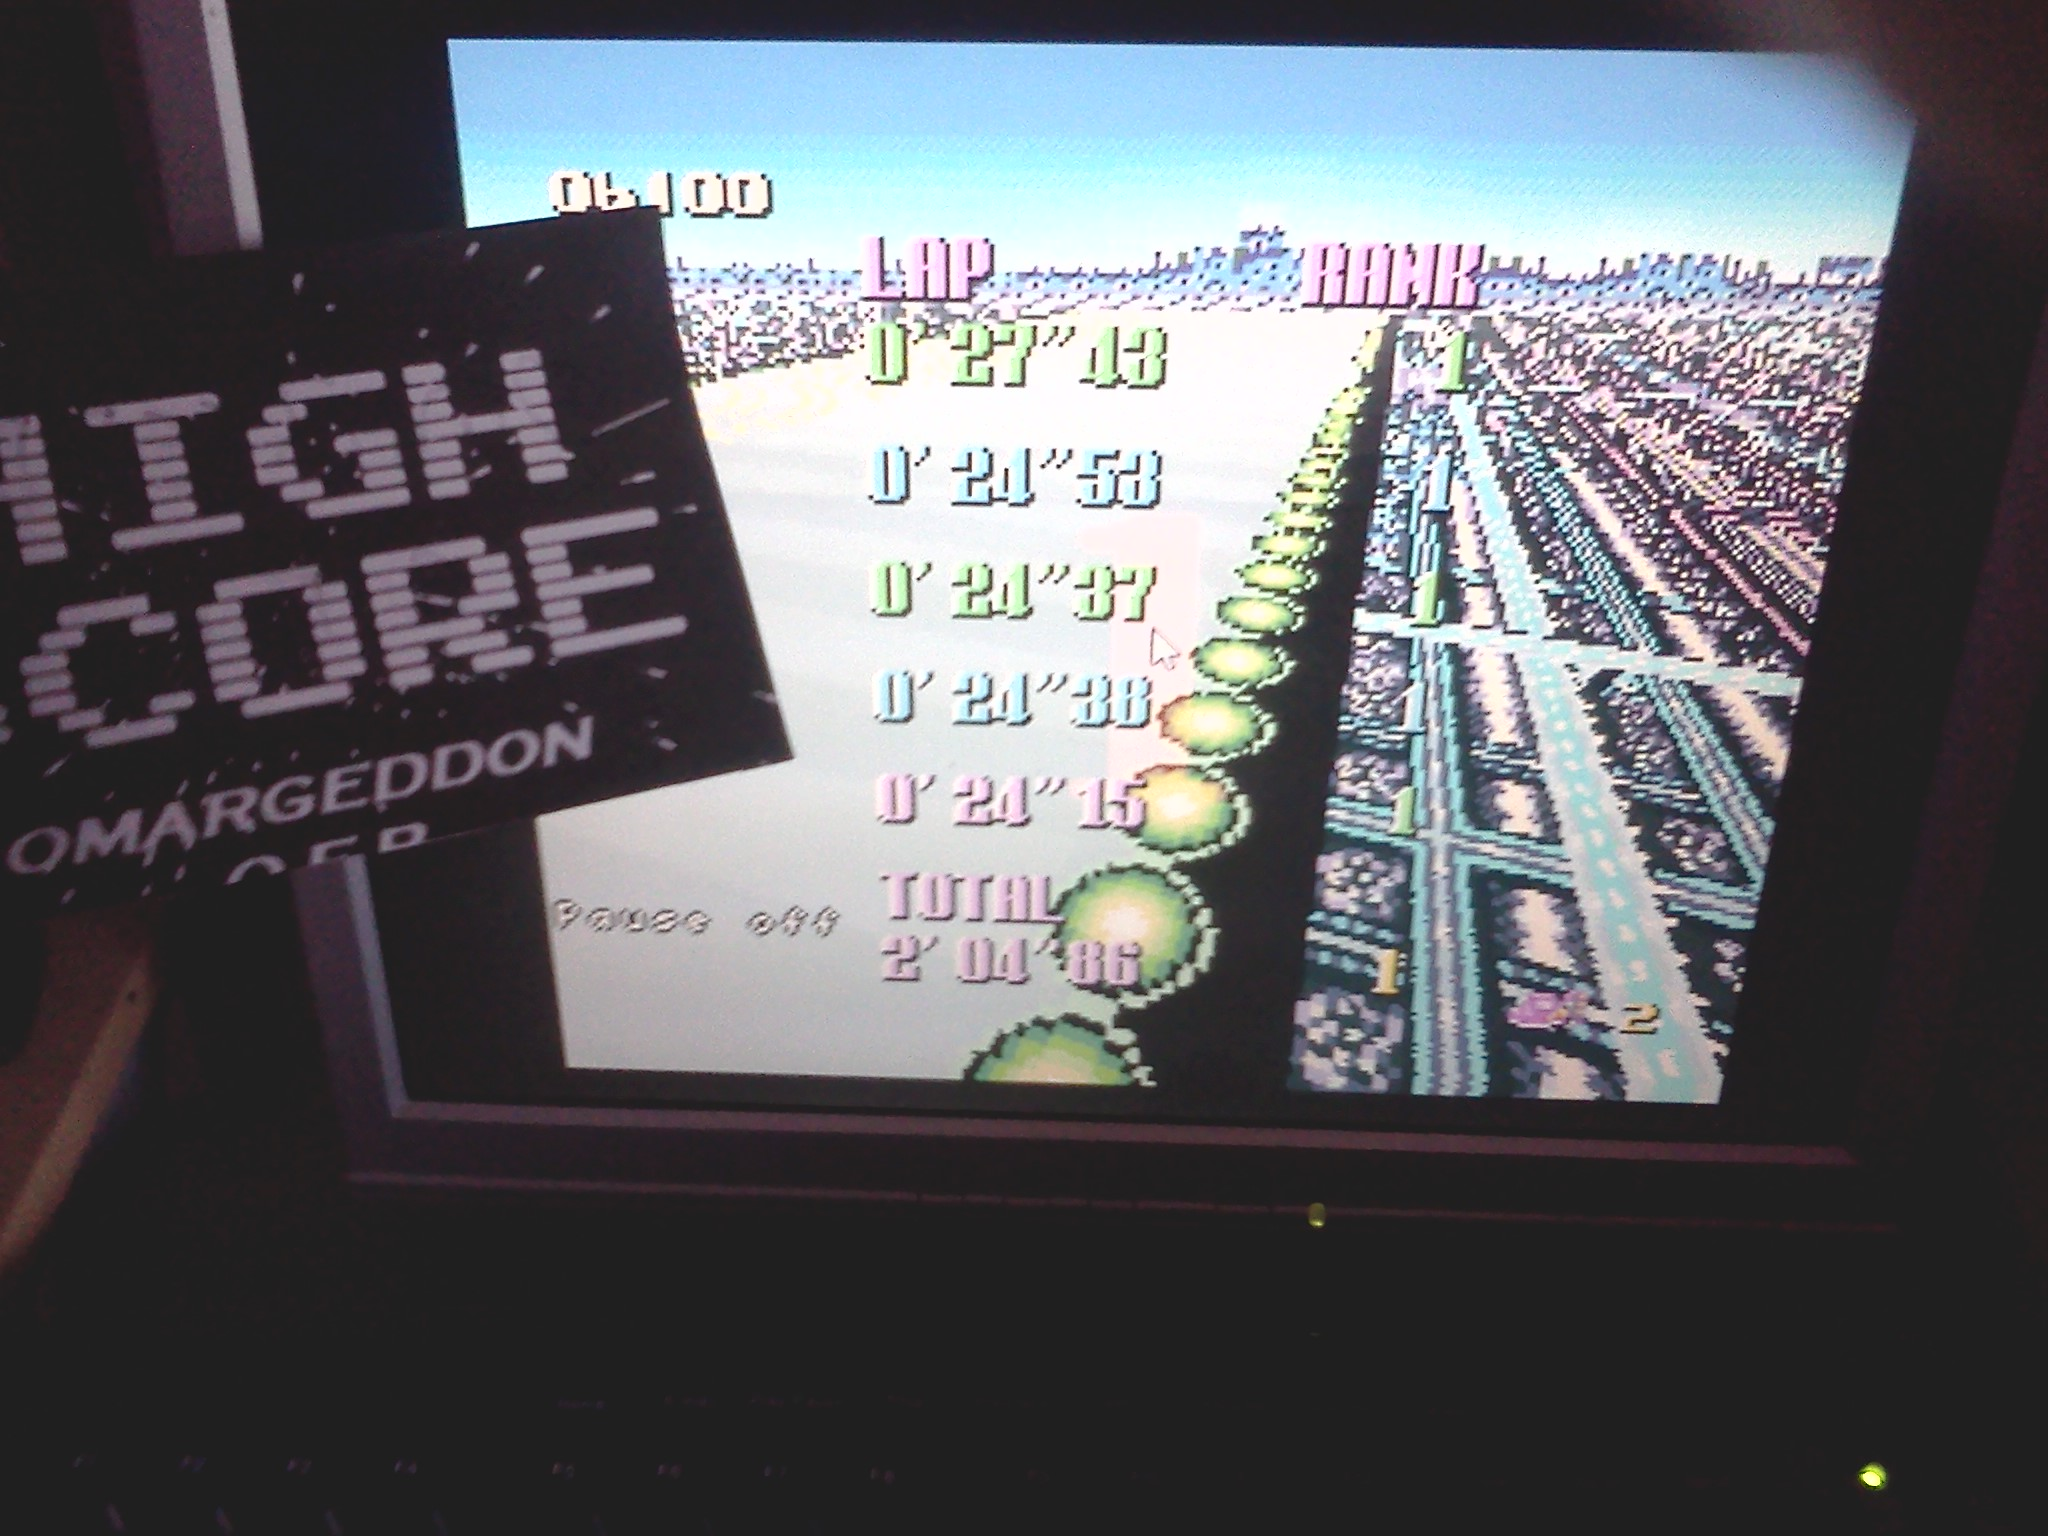 F-Zero: Mute City I [Beginner] time of 0:02:04.86